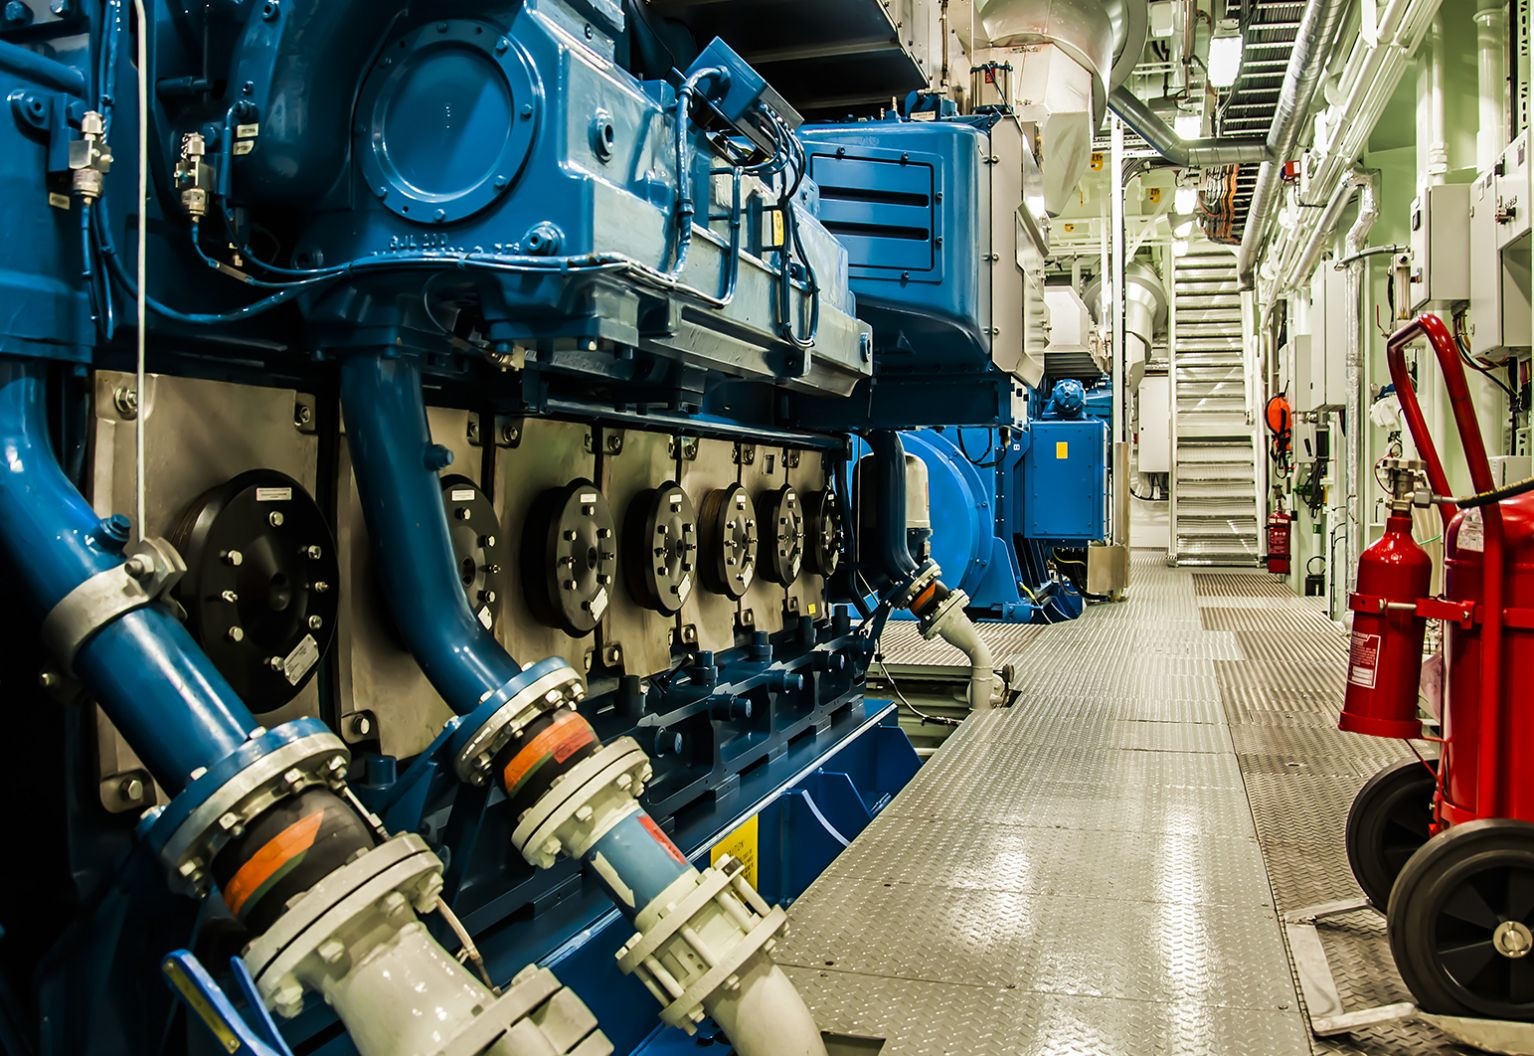 Internal engine room systems with blue piping.